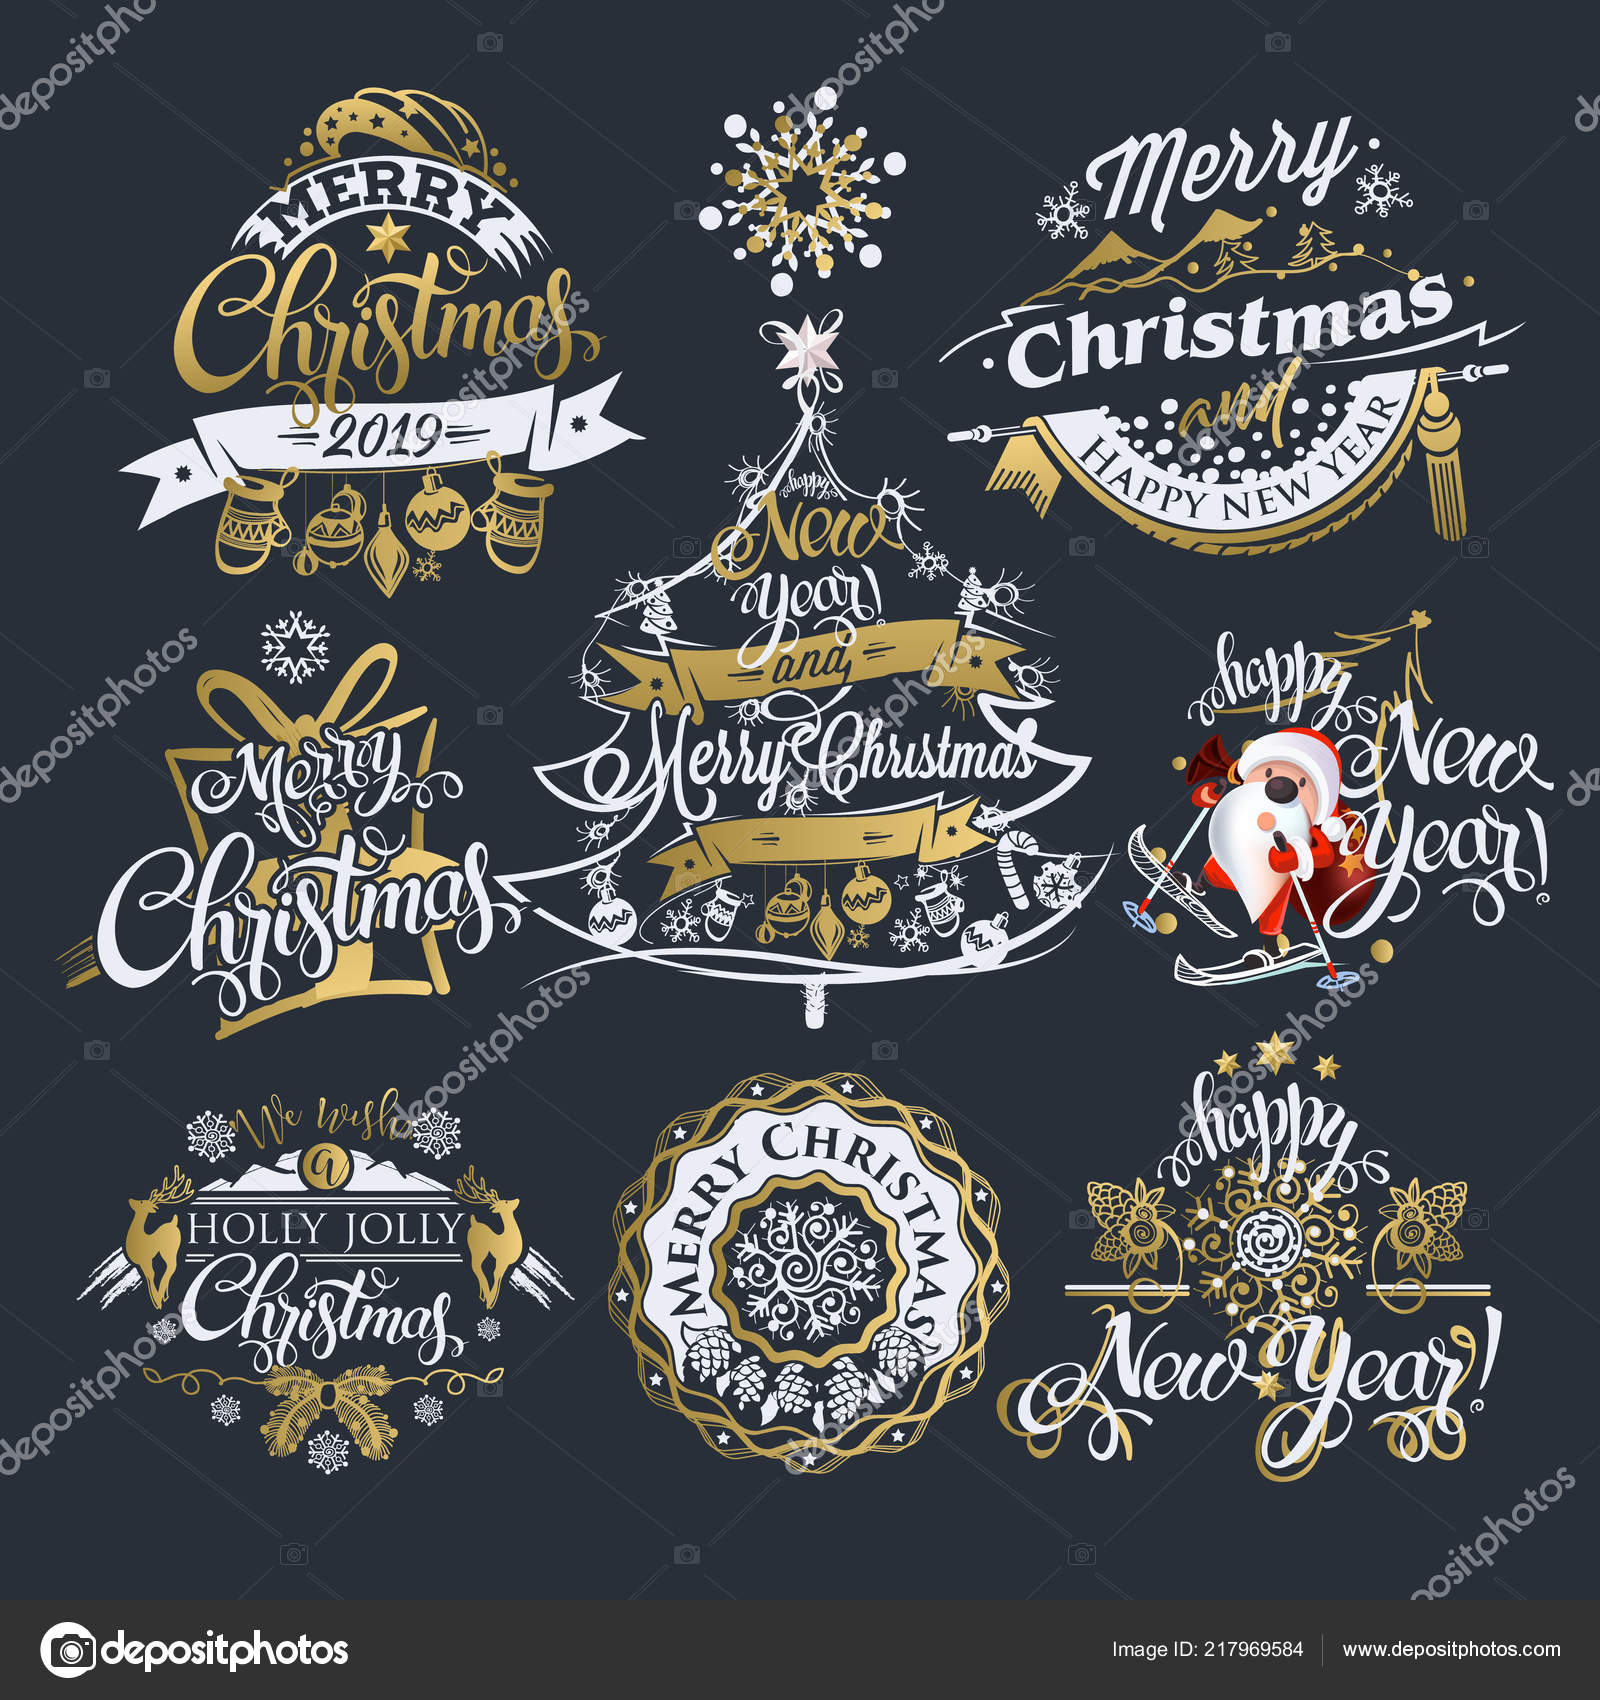 2019 christmas and new year labels and borders decoration set of calligraphic design with typographic labels and icons elements for you